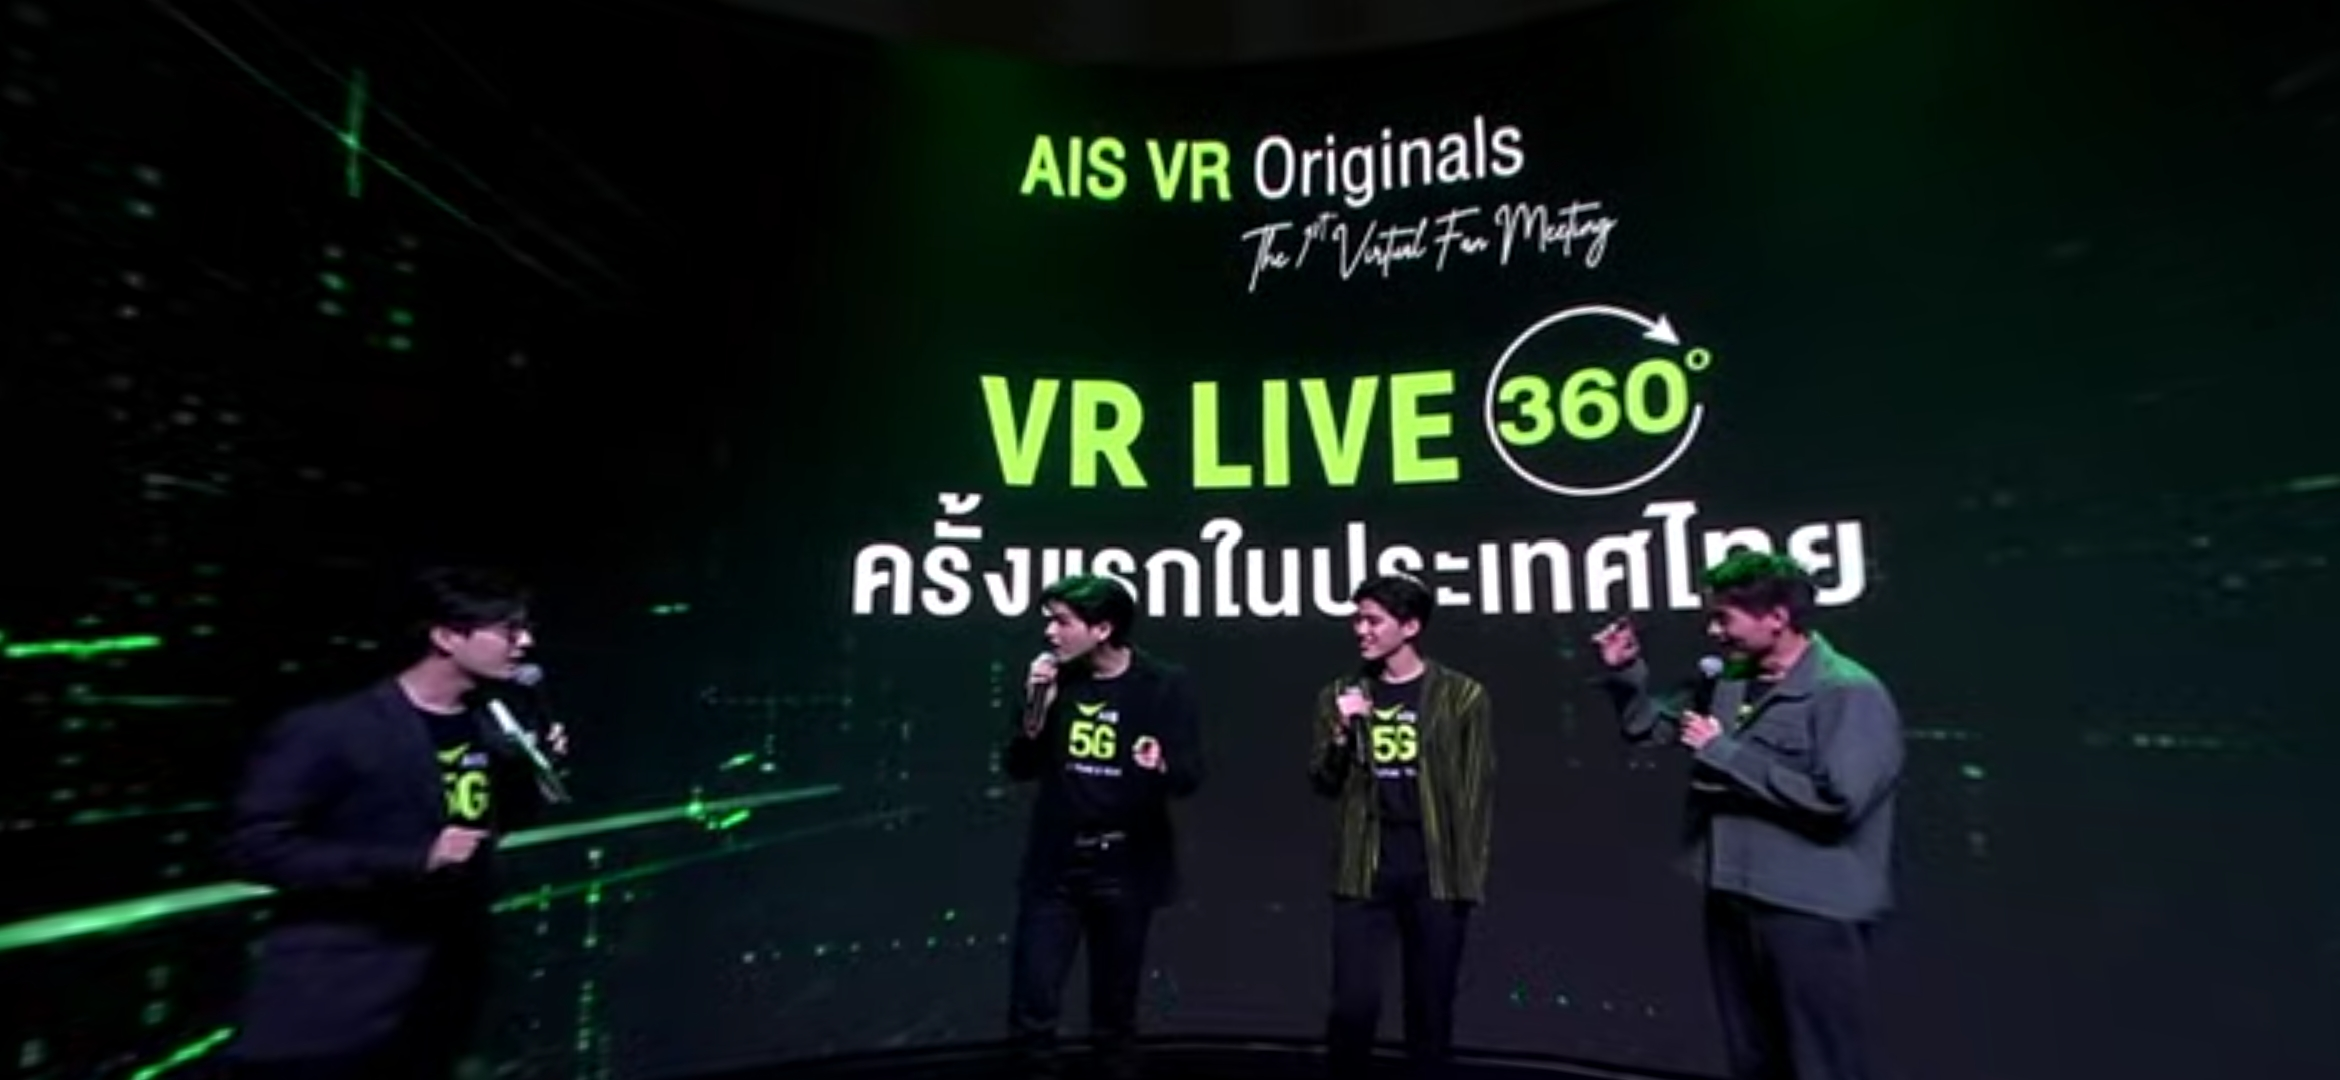 "200810 Pic 05 AIS x Nadao โชว์ล้ำ จัดจริง ""The First 5G VR live streaming"" รายแรกในไทย"